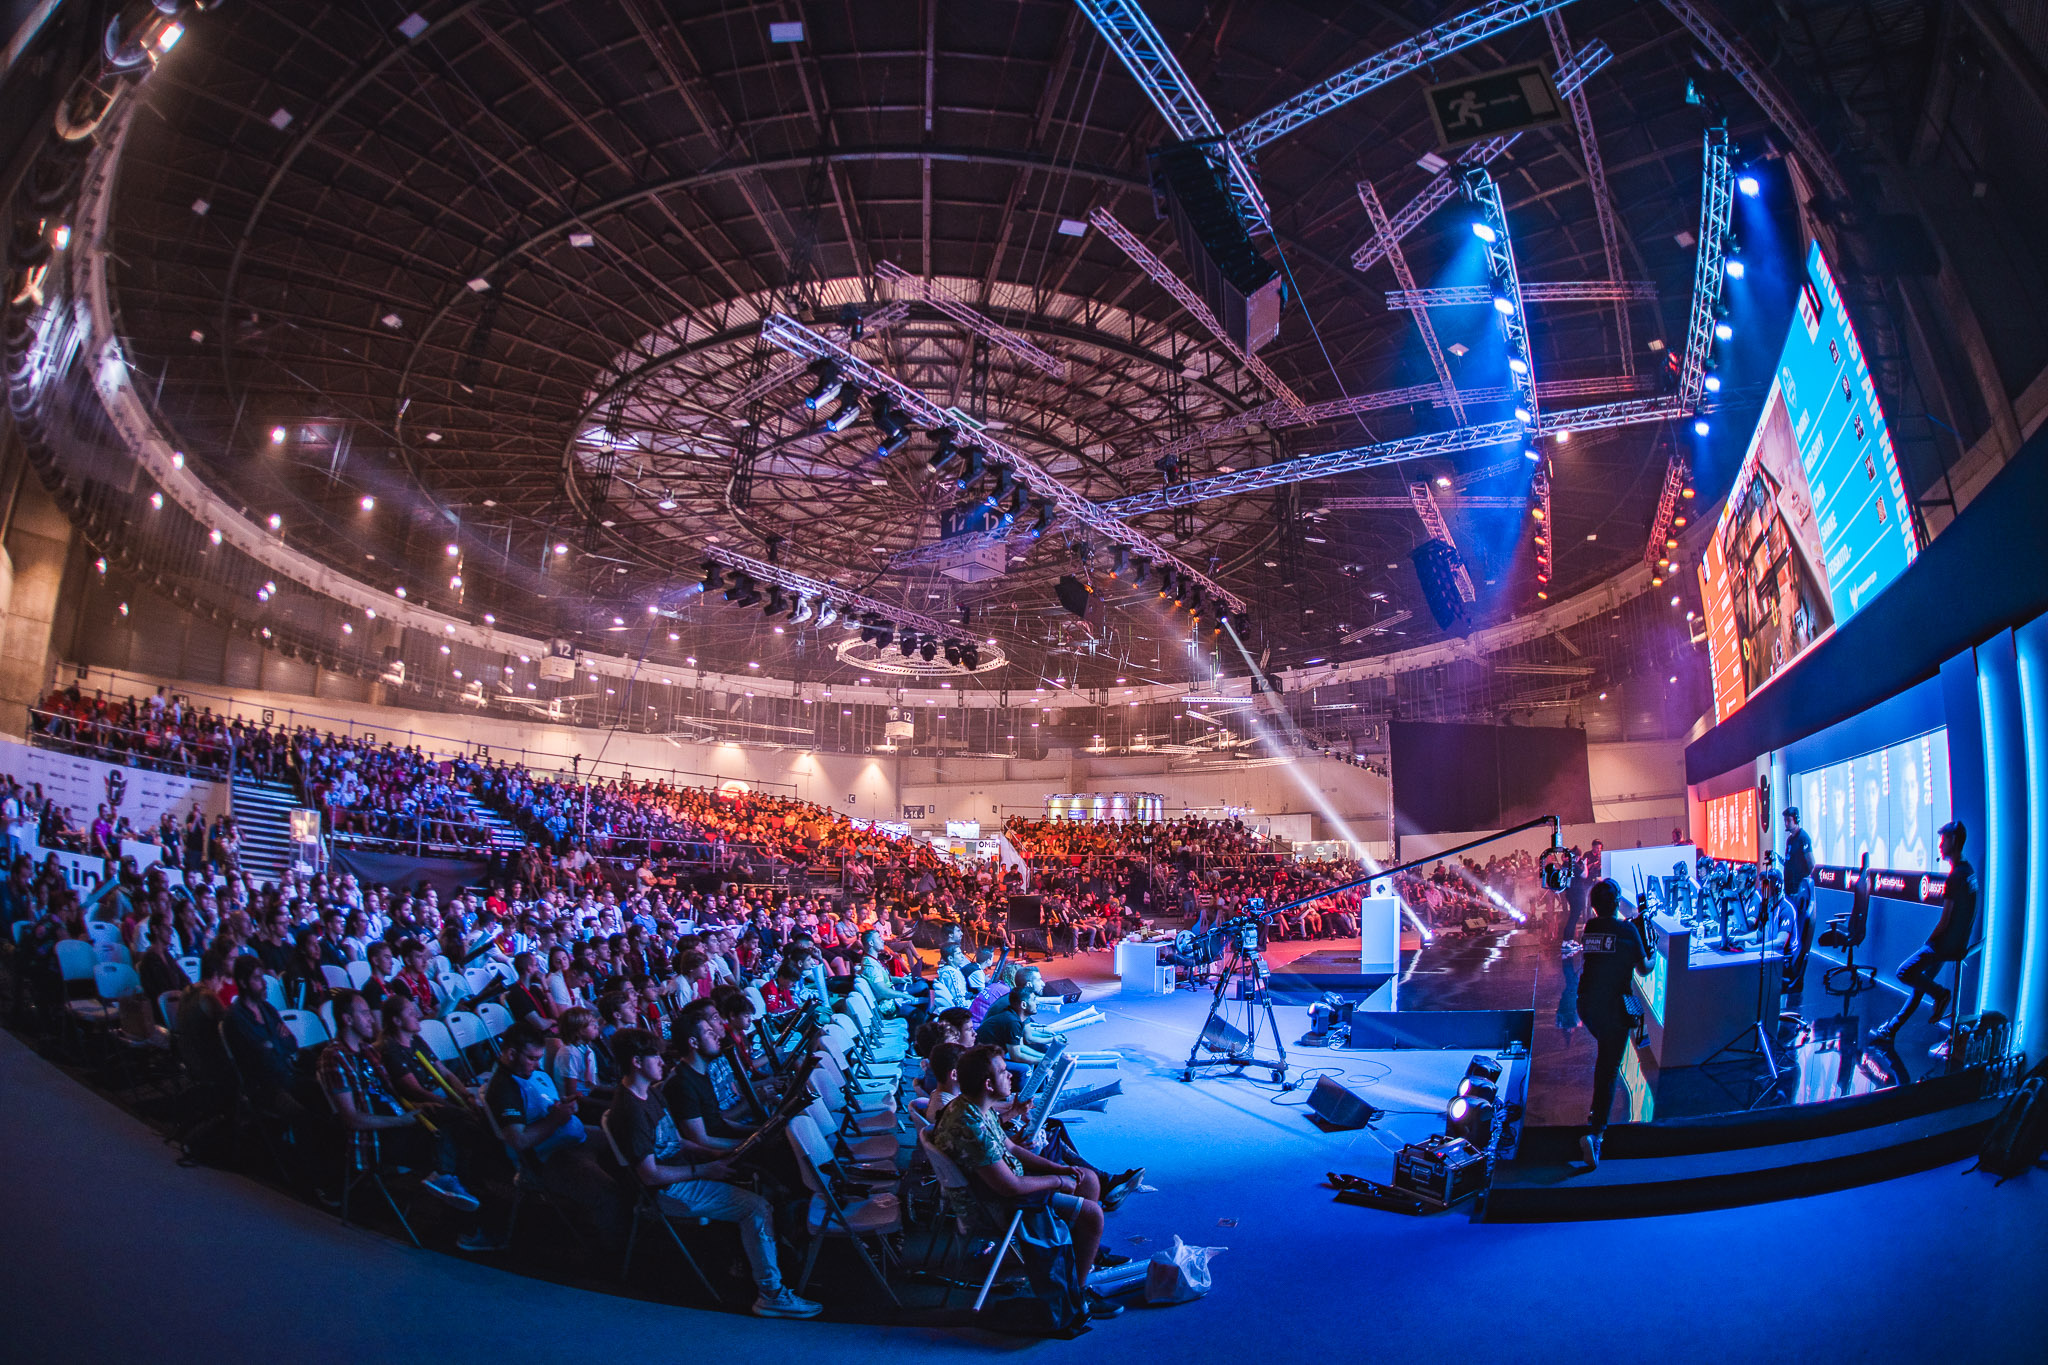 EU Challenger League: Who's in the Running in the Race to Qualify